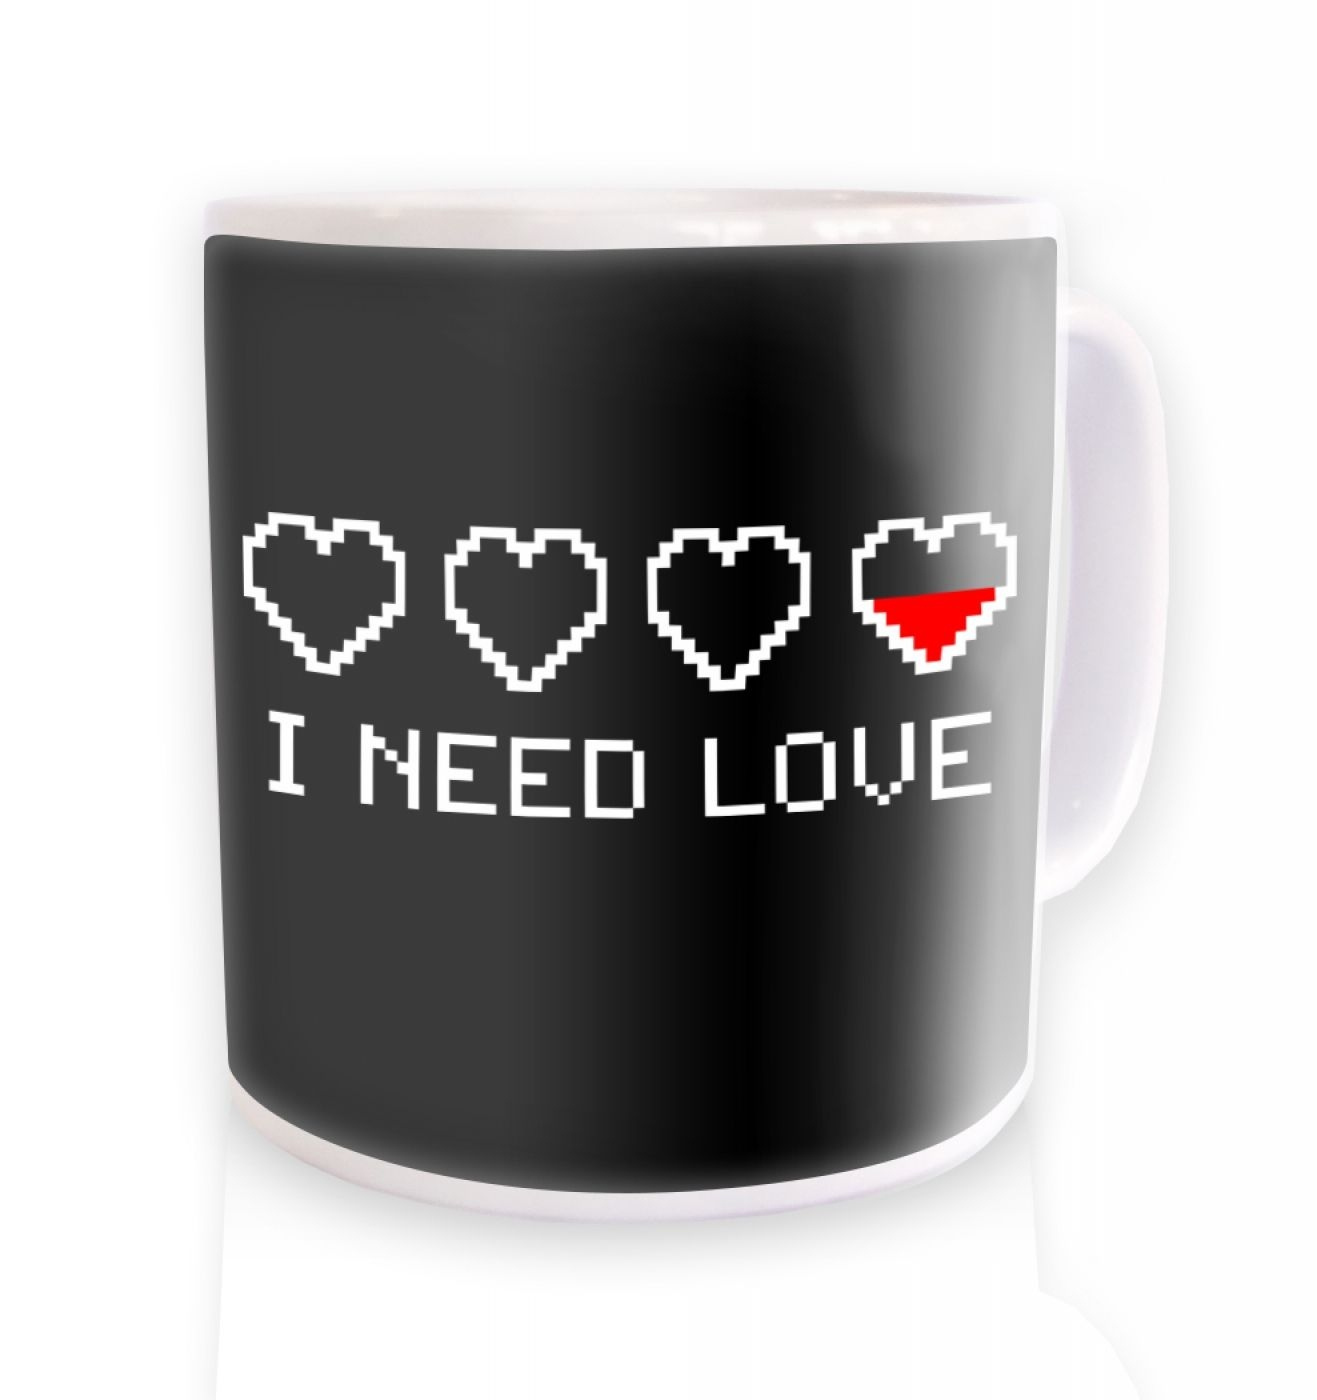 Pixelated I Need Love ceramic coffee mug